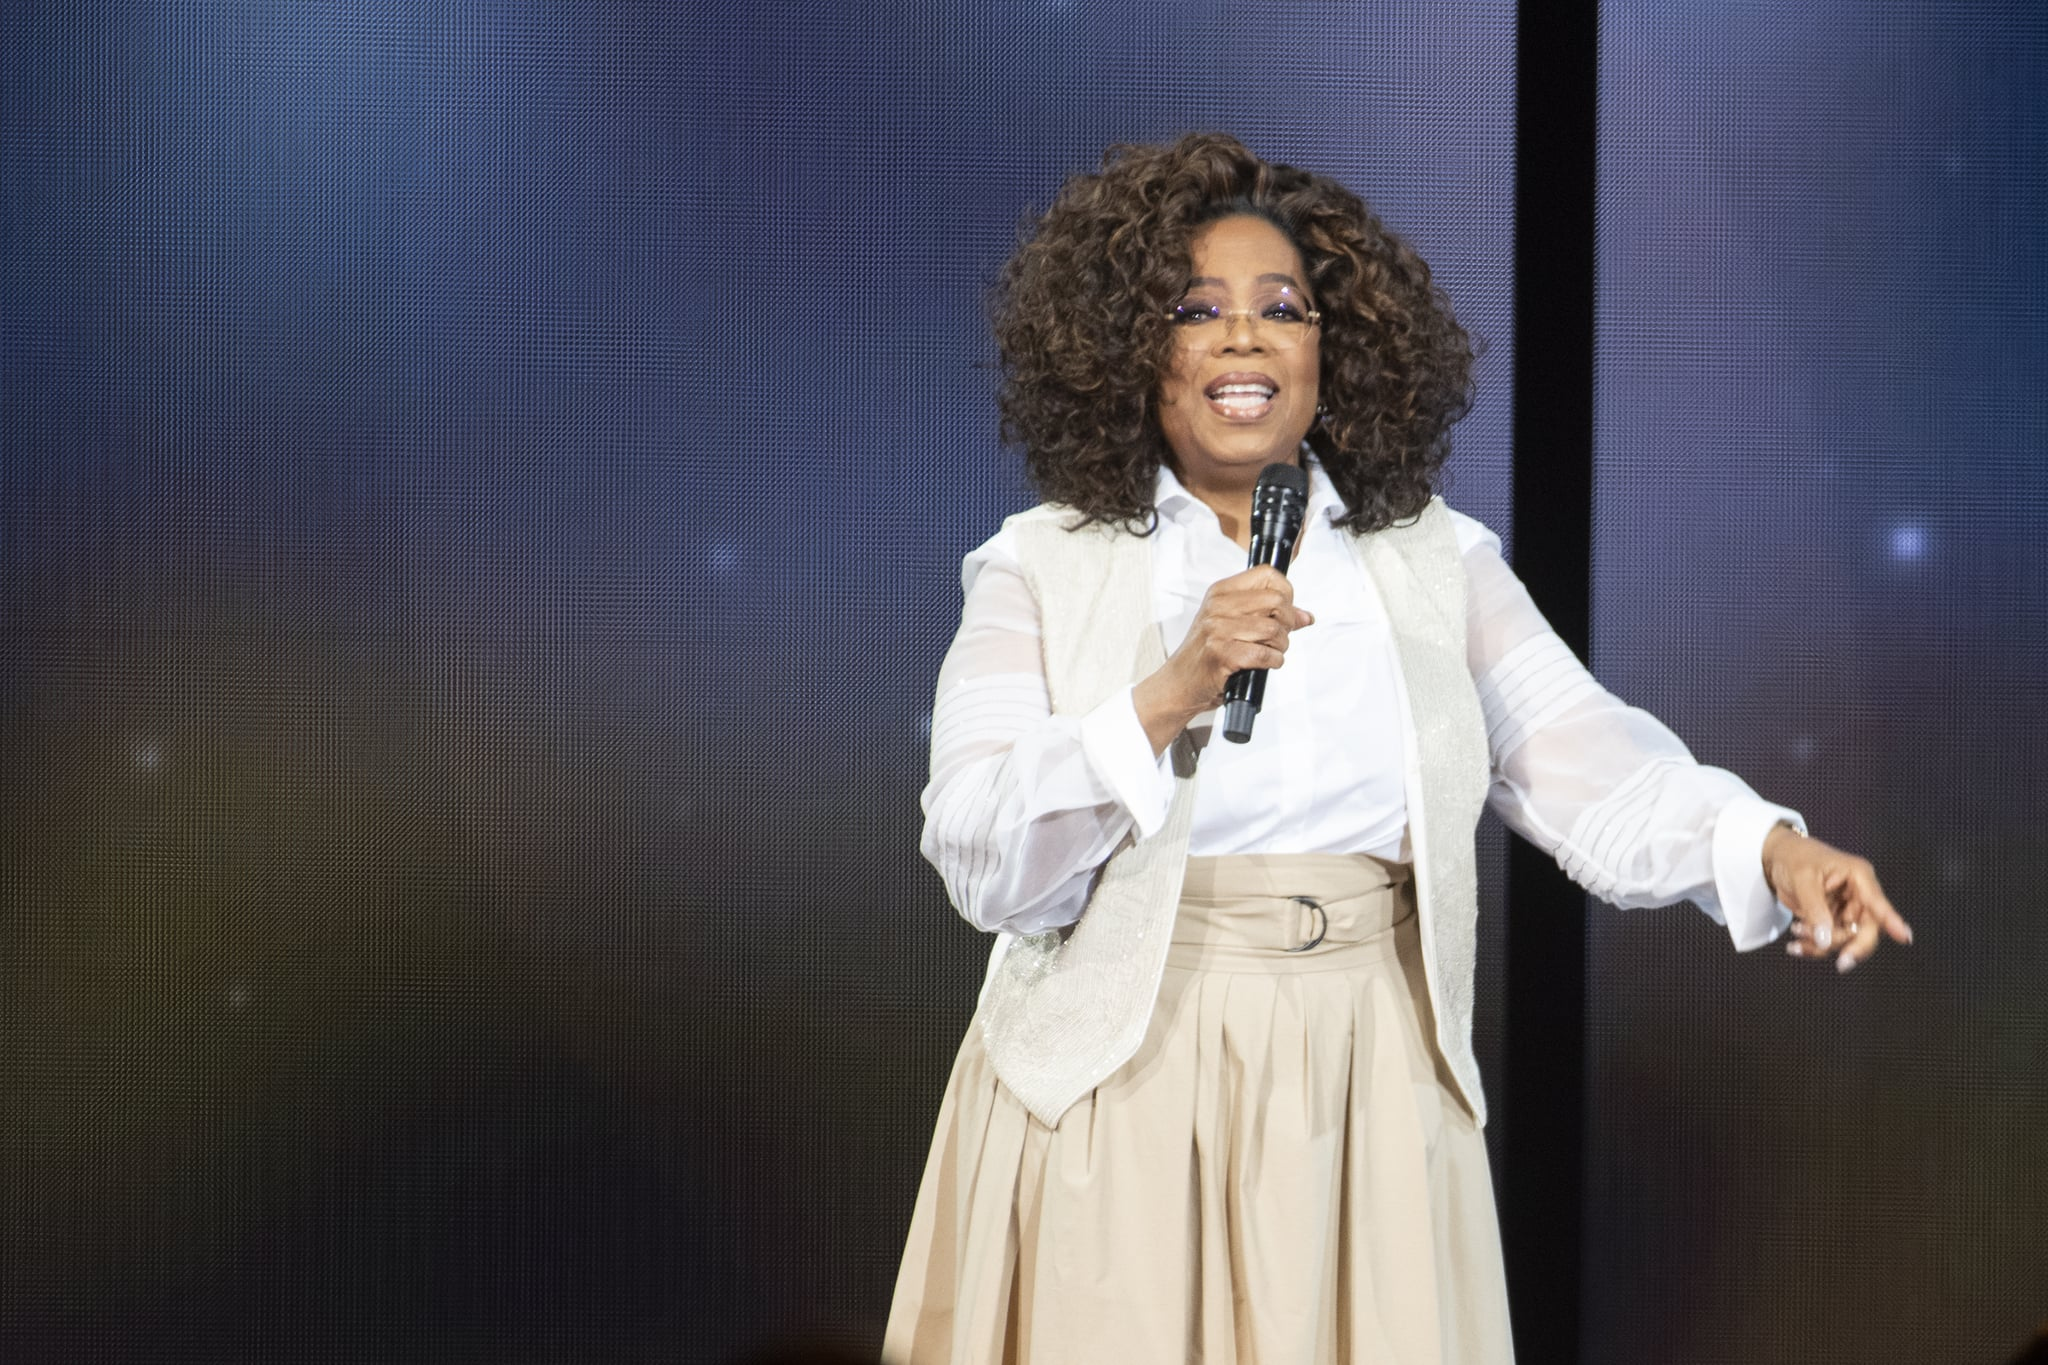 DENVER, COLORADO - MARCH 07: Oprah Winfrey speaks during Oprah's 2020 Vision: Your Life in Focus Tour presented by WW (Weight Watchers Reimagined) at Pepsi Center on March 07, 2020 in Denver, Colorado.   (Photo by Tom Cooper/Getty Images)